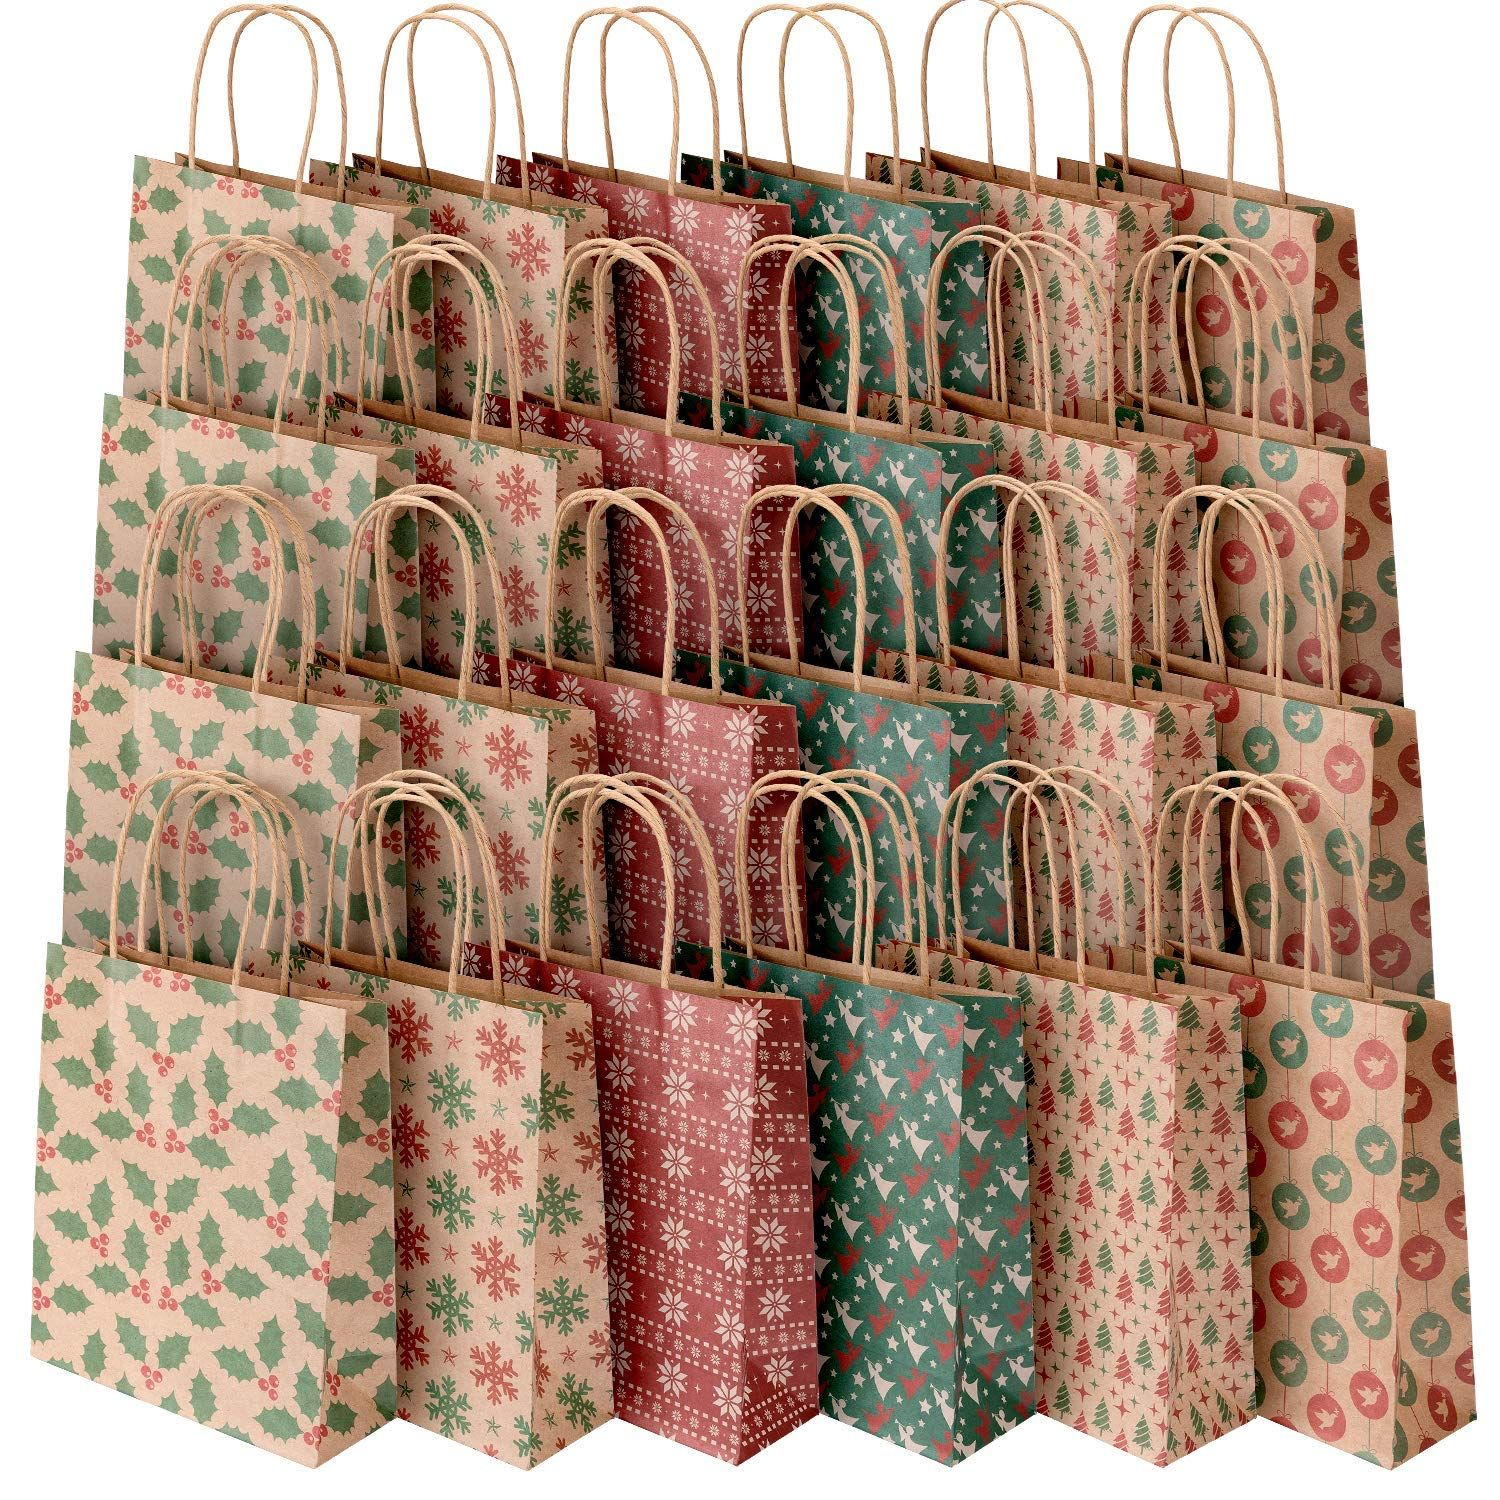 PAPER GIFT BAGS /& JEWELRY BAGS 3 COLORS AND 4 SIZES PAPER BAGS TRELLIS ASSORTED